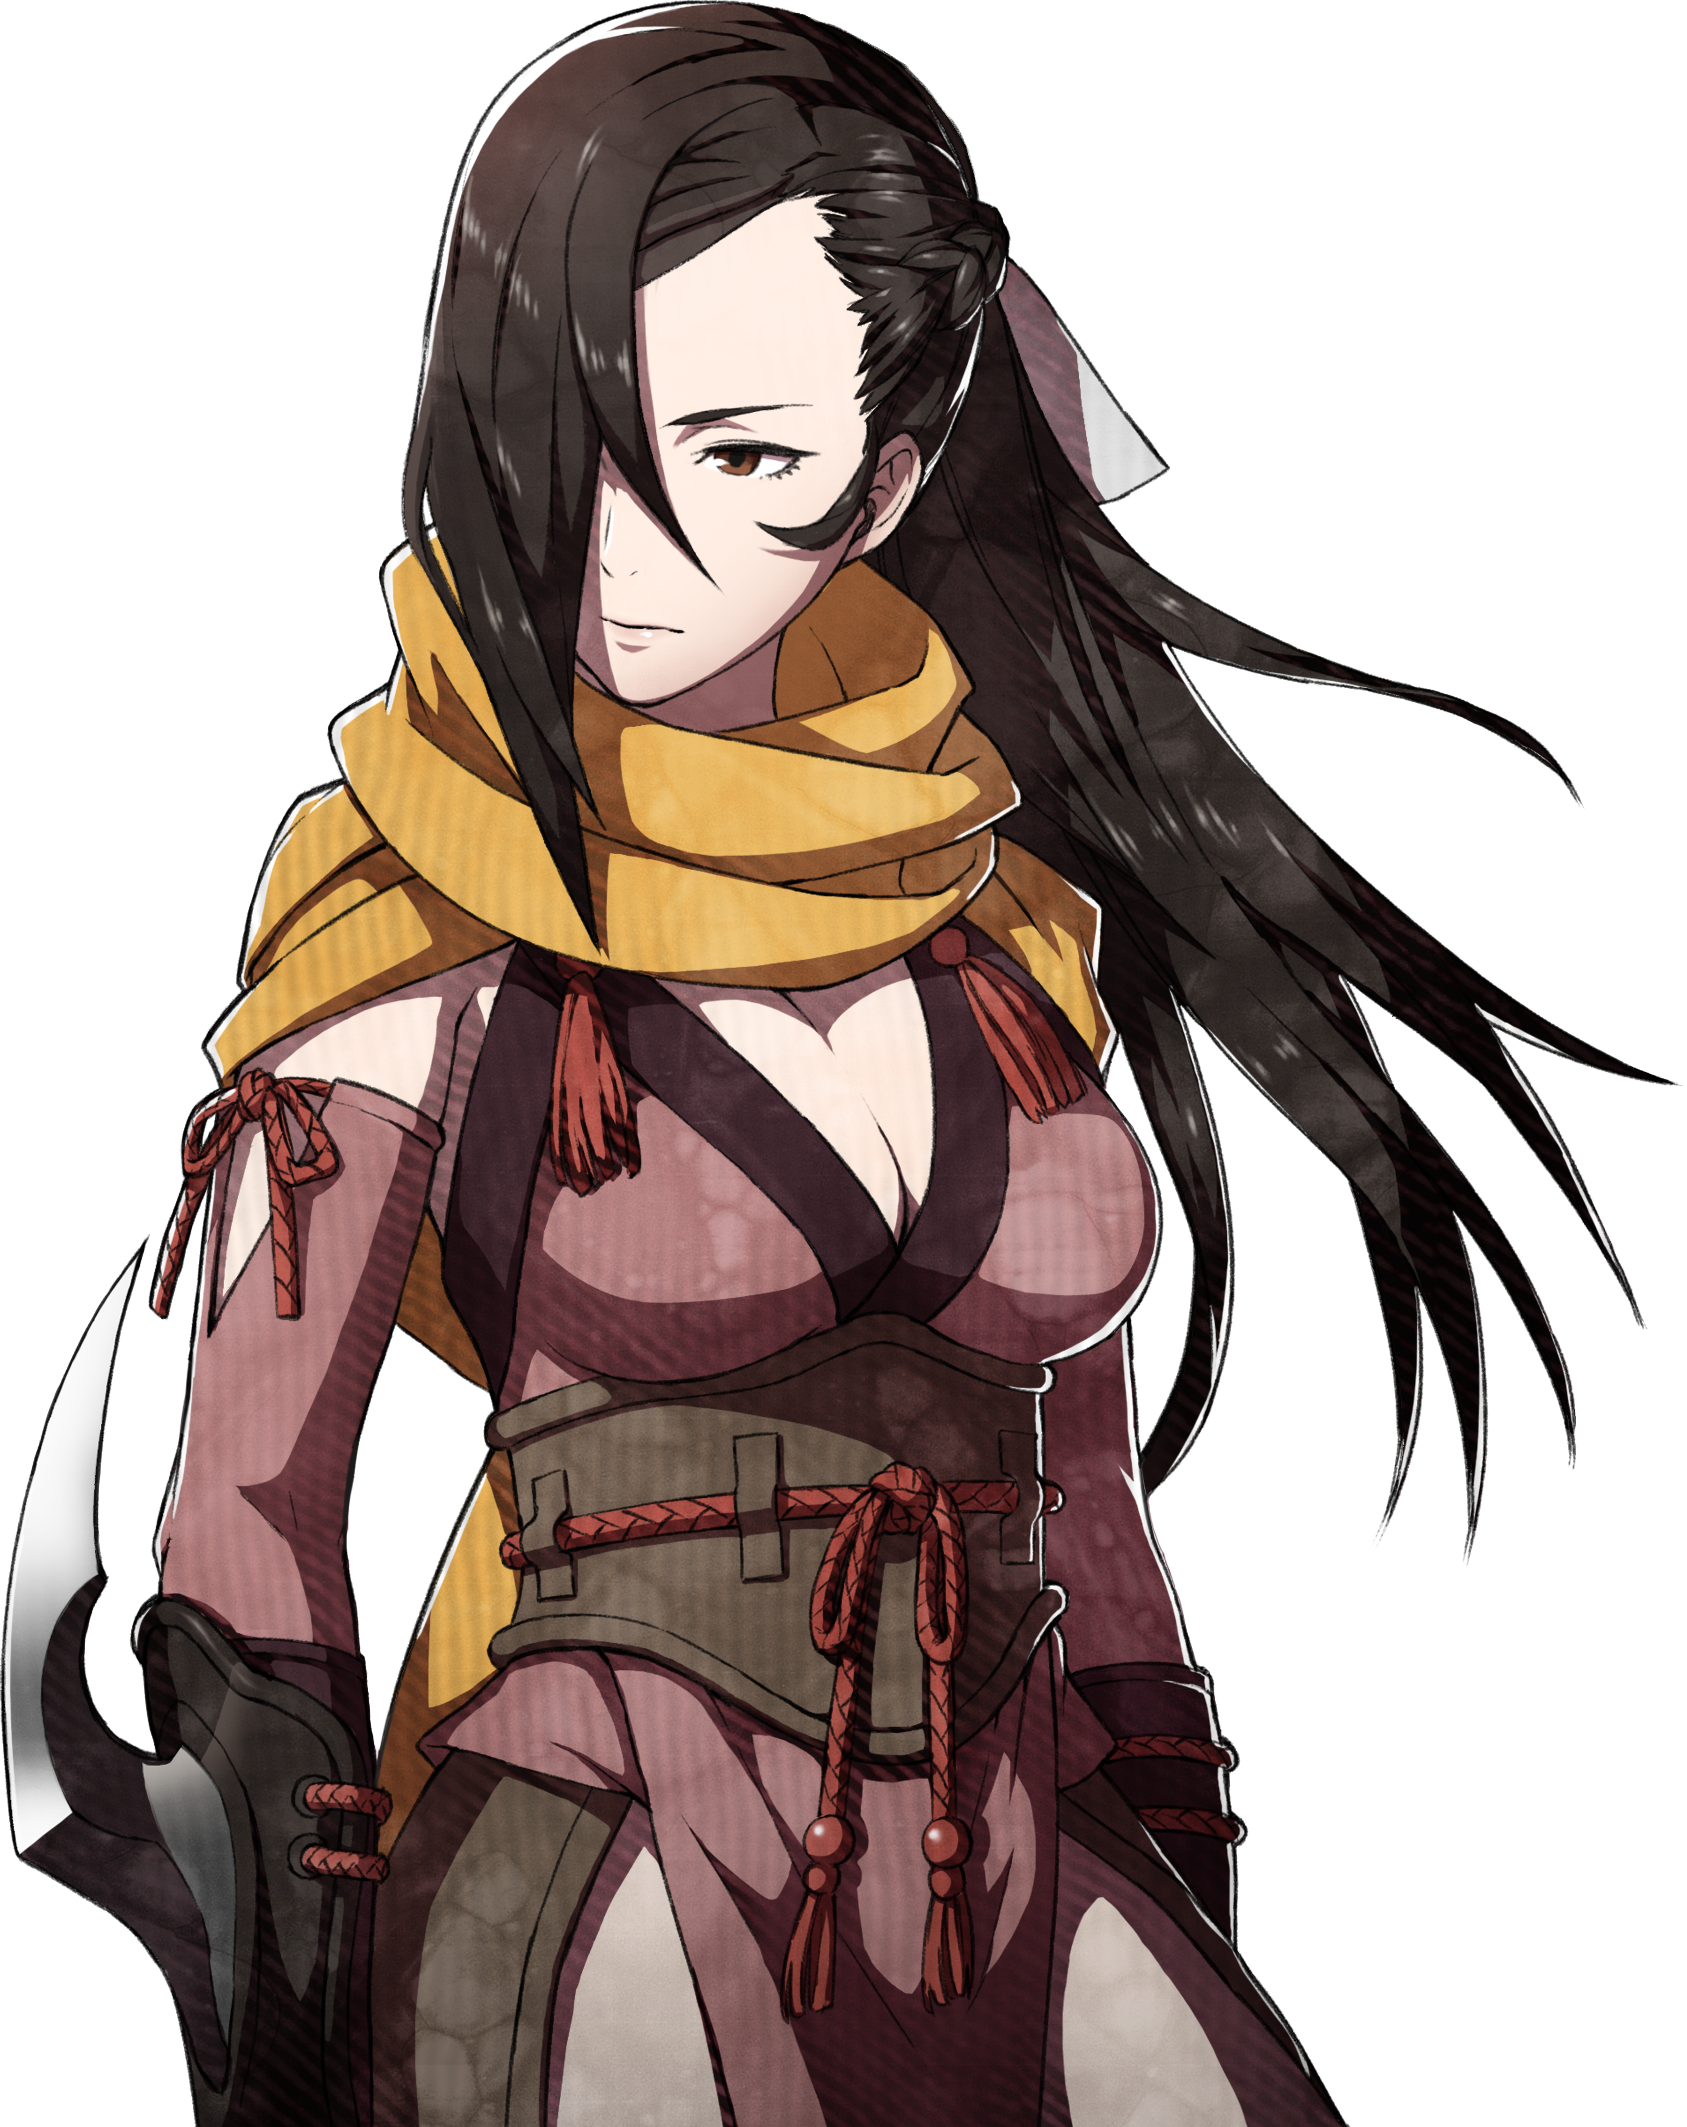 Kagero Fire Emblem / As lord ryoma's retainer, it is my duty to follow his every order.